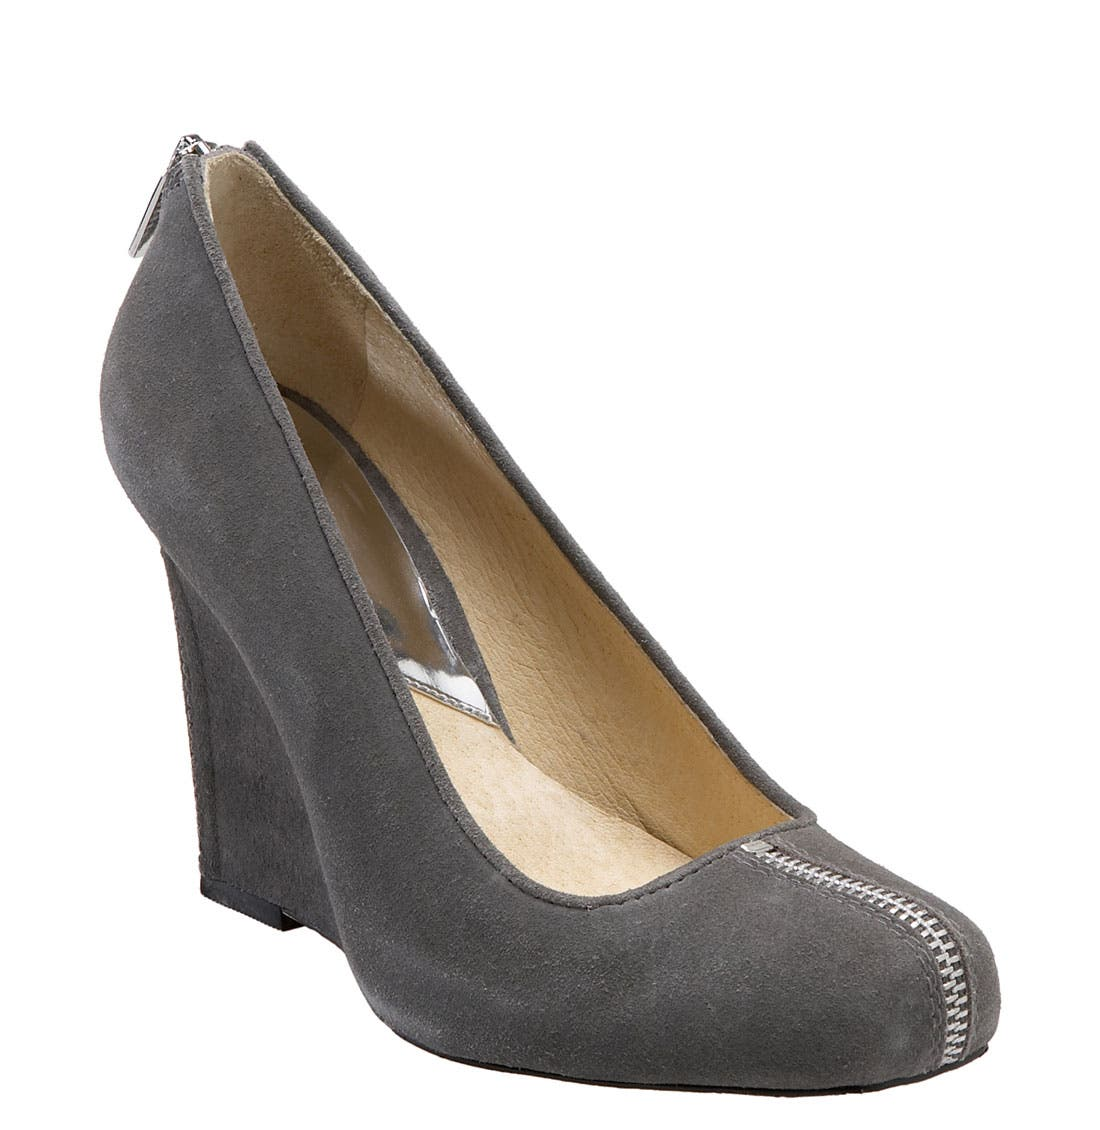 Alternate Image 1 Selected - MICHAEL Michael Kors 'Parker' Wedge Pump (Nordstrom Exclusive)